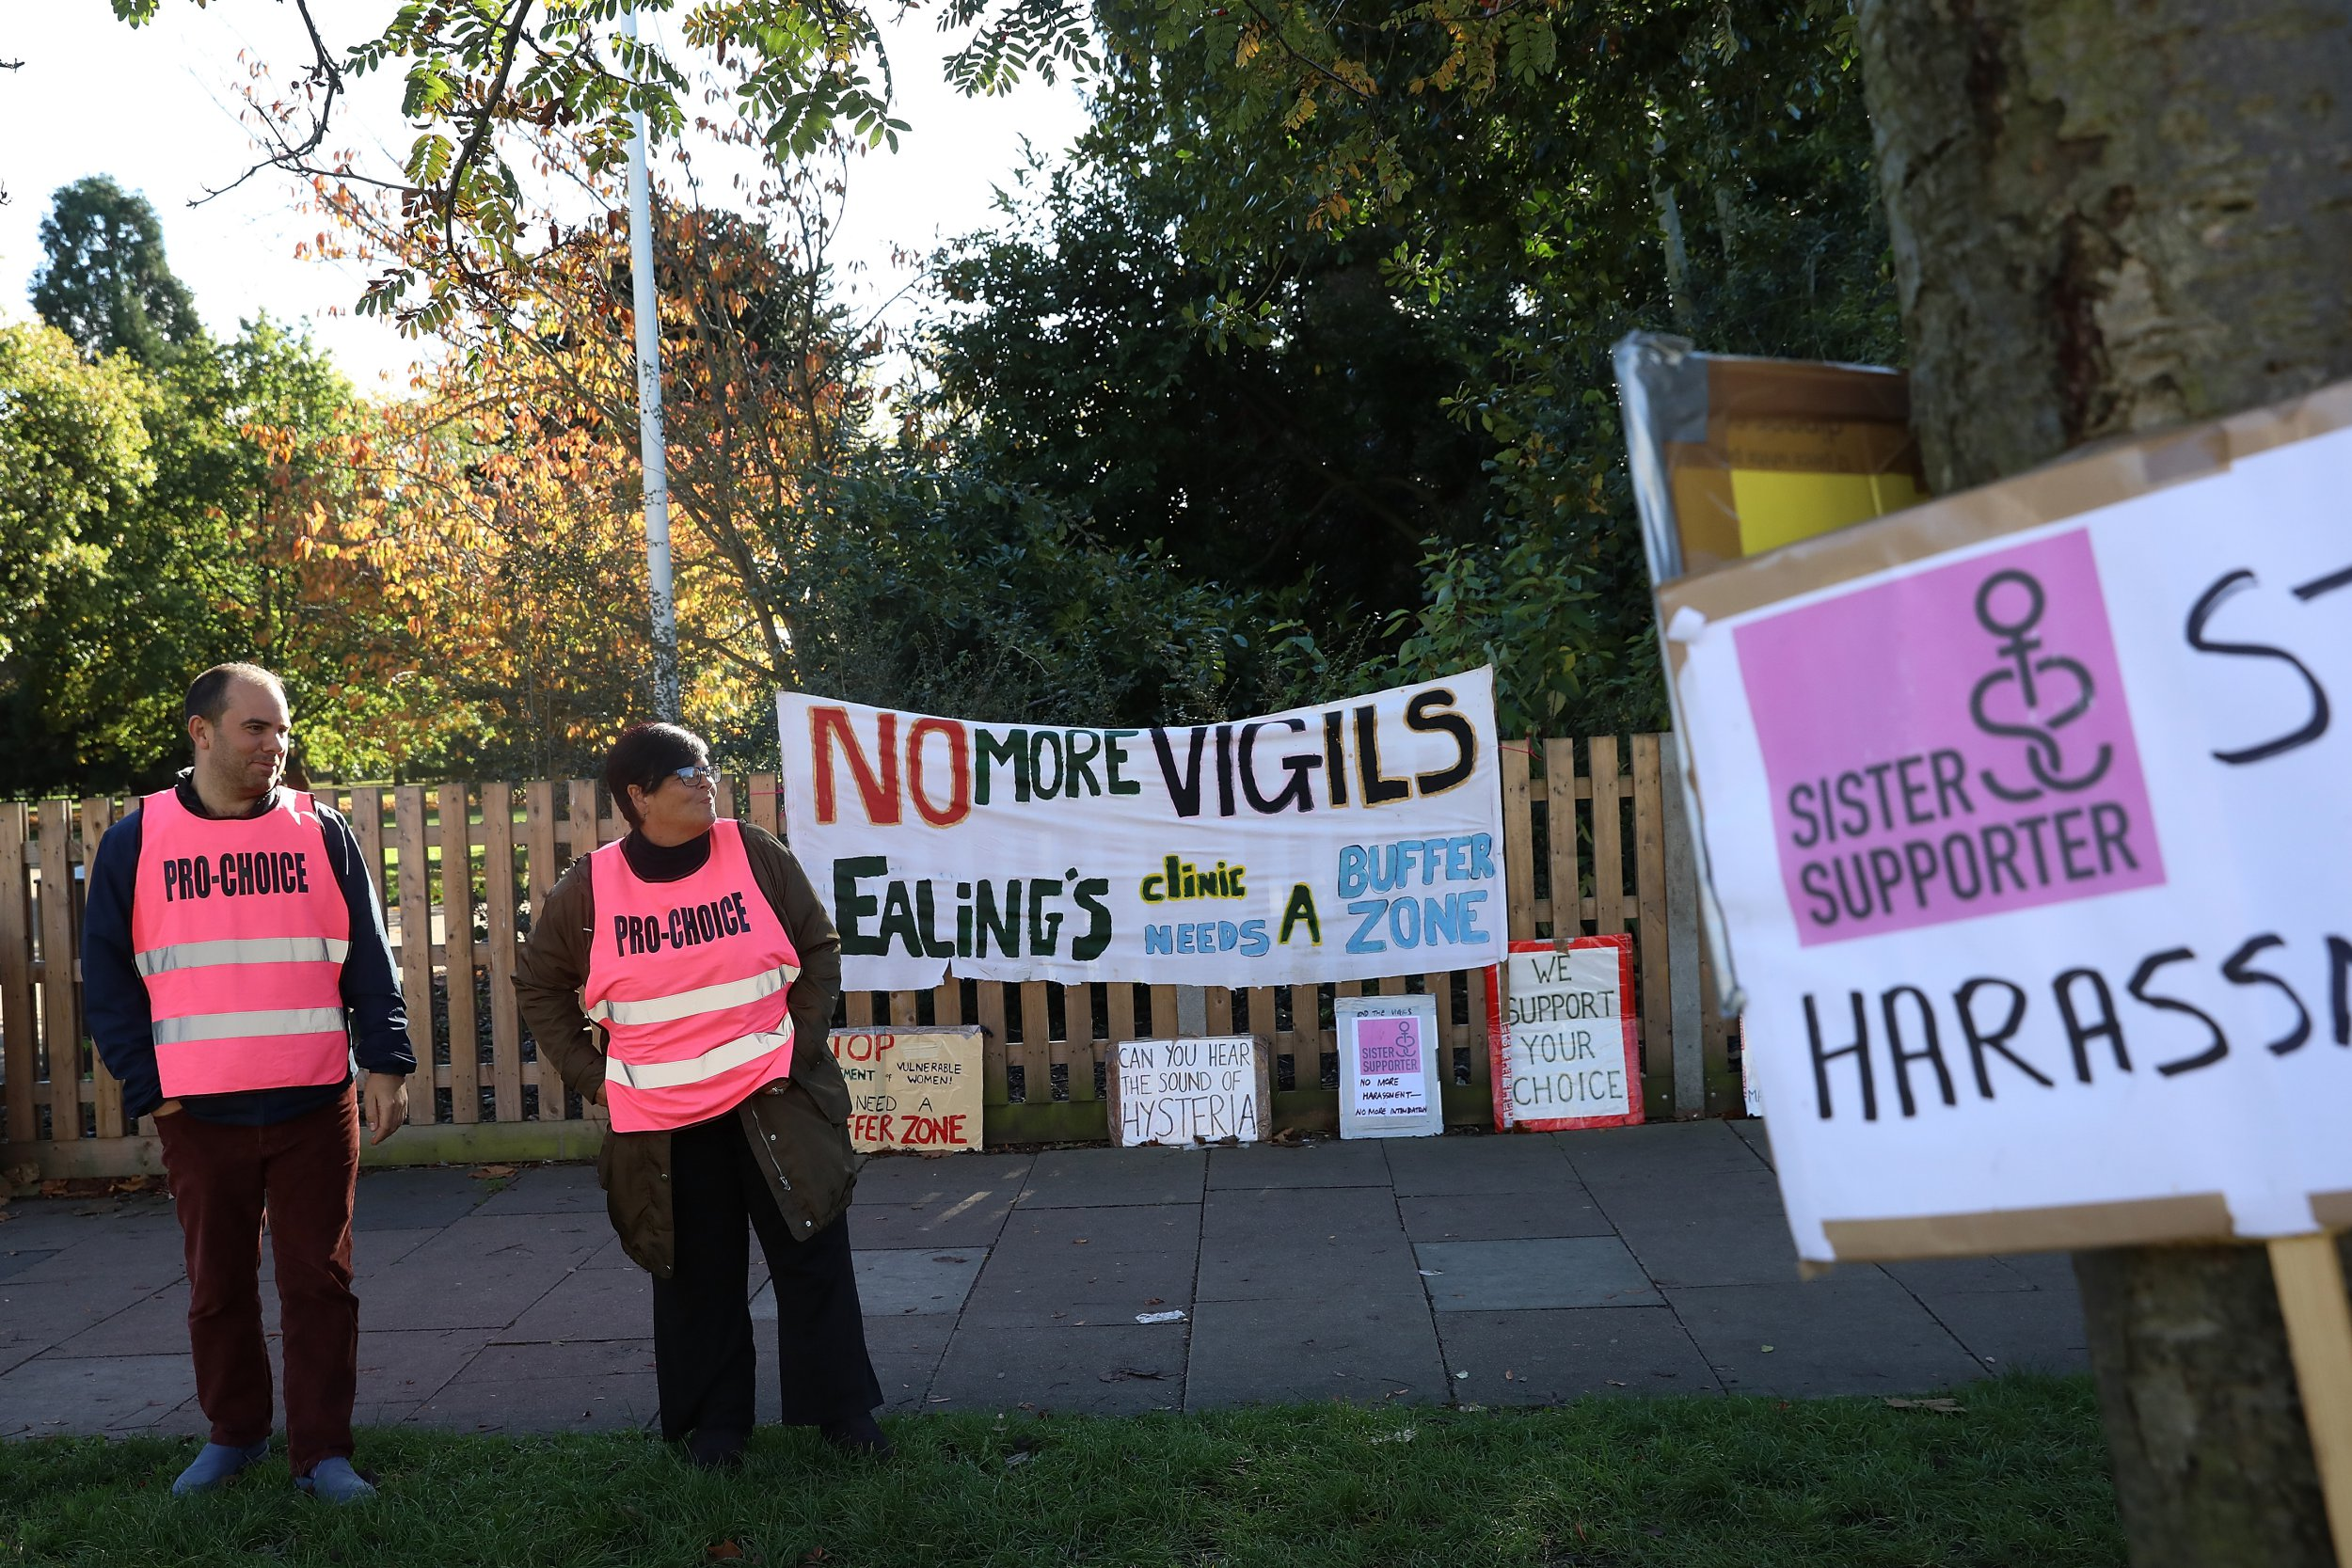 Buffer zones to stop abortion clinic protests are wanted, needed and overdue